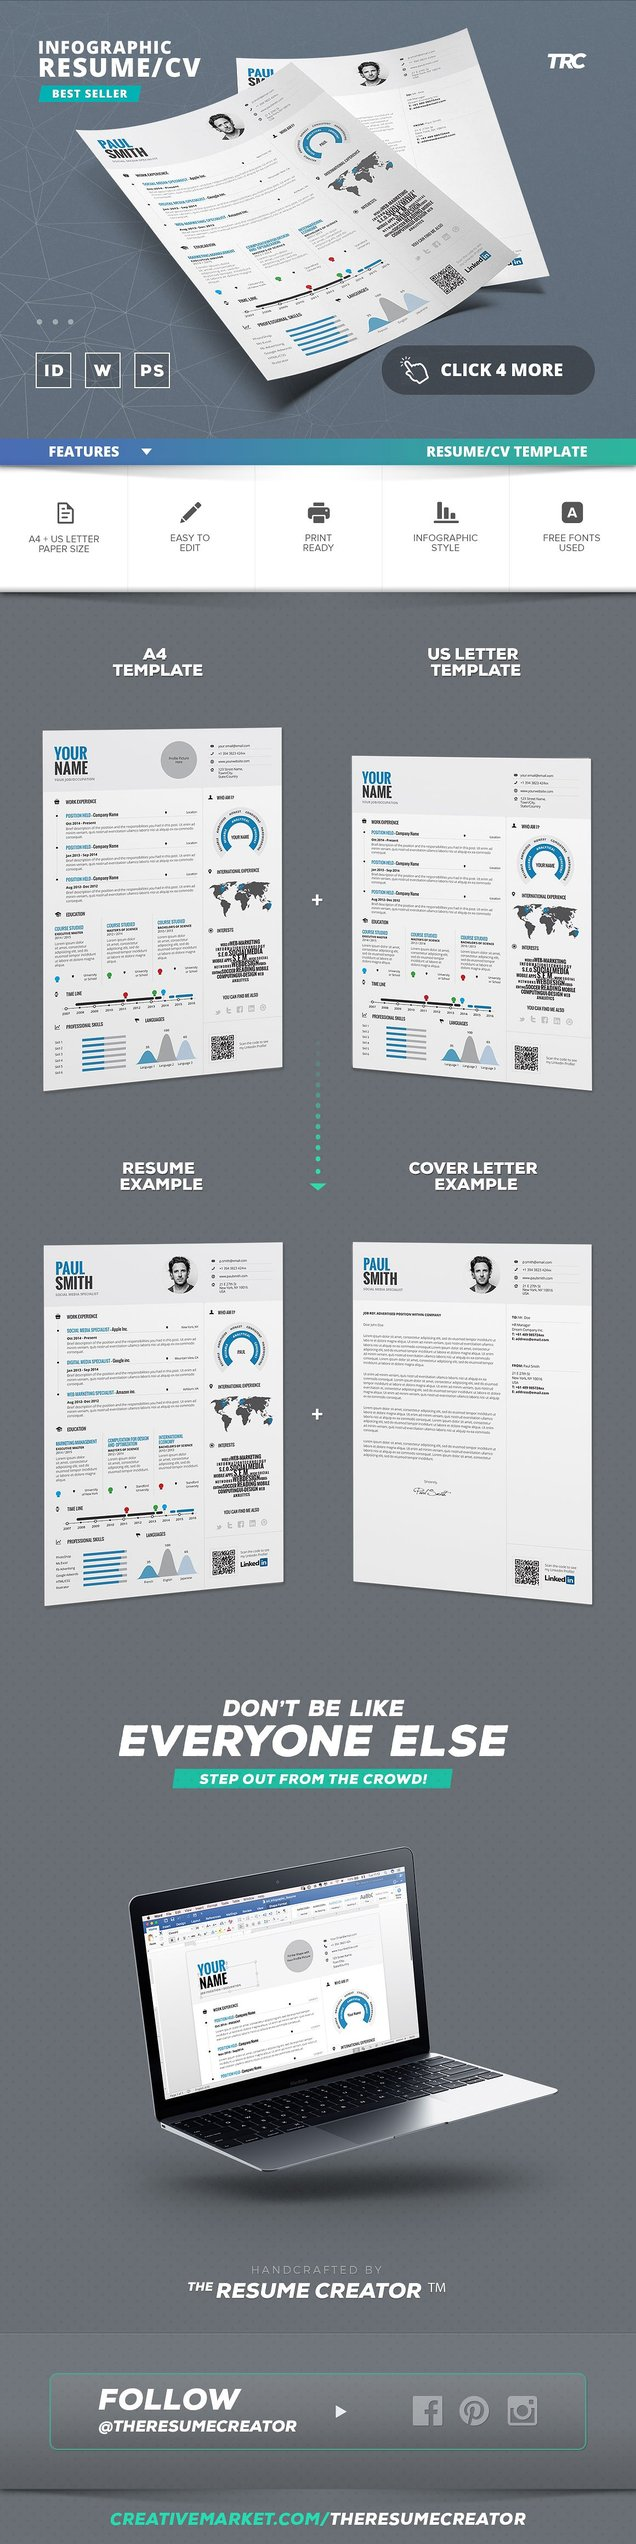 infographic resume vol 1